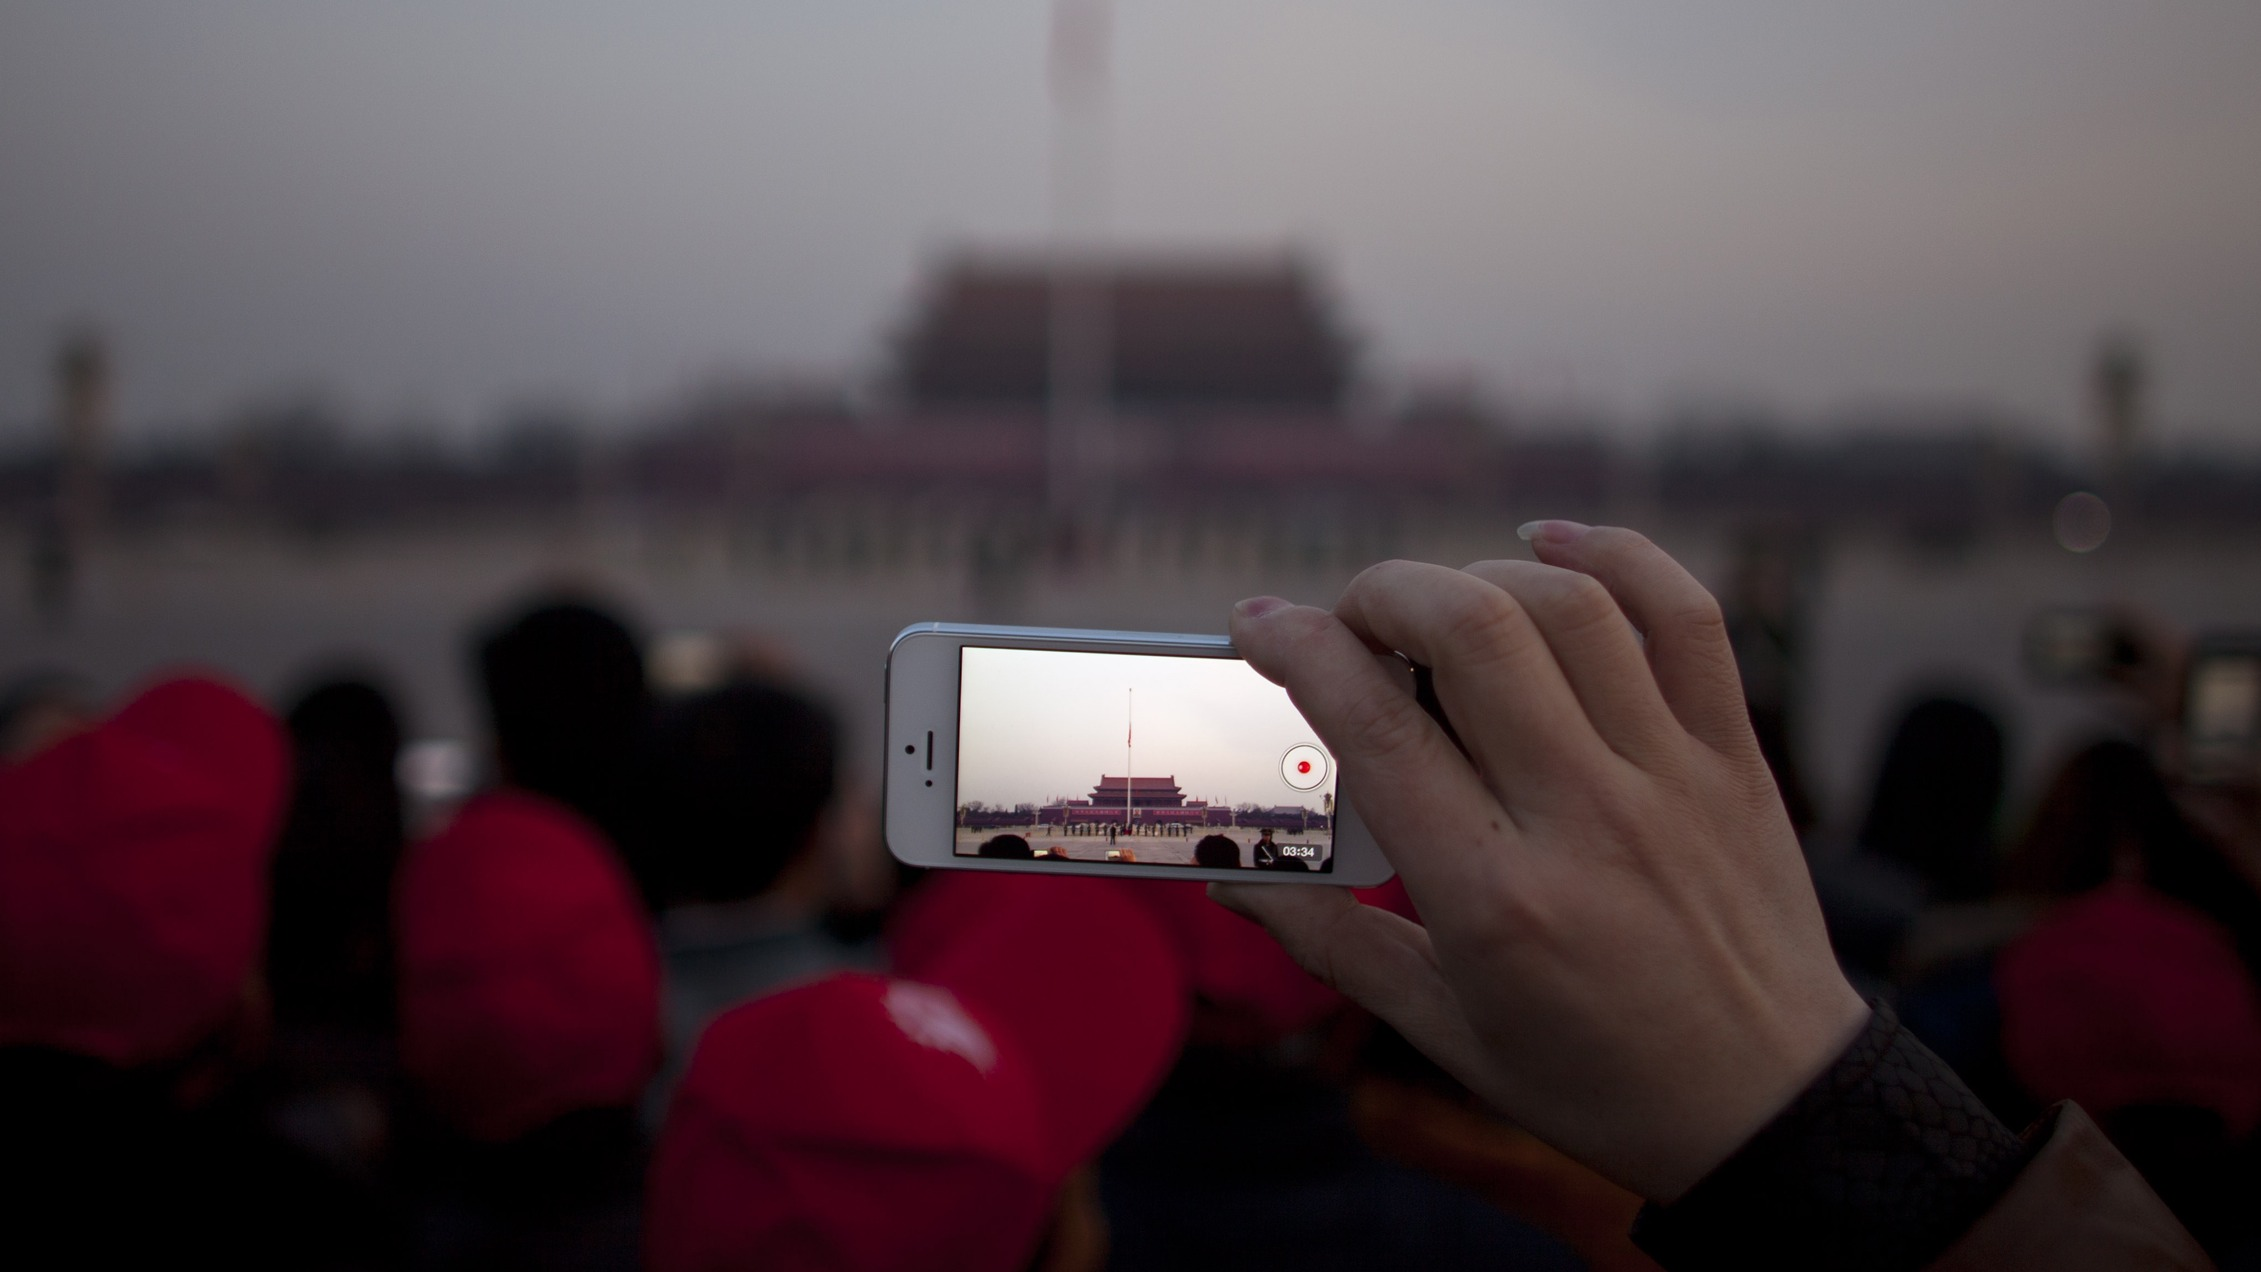 A Chinese tourist uses his smart phone to take videos of a flag raising ceremony on Tiananmen Square at dawn before the opening session of the annual National People's Congress held in the nearby Great Hall of the People, Beijing, China, Tuesday, March 5, 2013. China's government promised its people Tuesday deficit-fueled spending to fight deep-seated corruption, improve the despoiled environment and address other quality-of-life issues demanded by an increasingly vocal public looking for change. (AP Photo/Alexander F. Yuan)